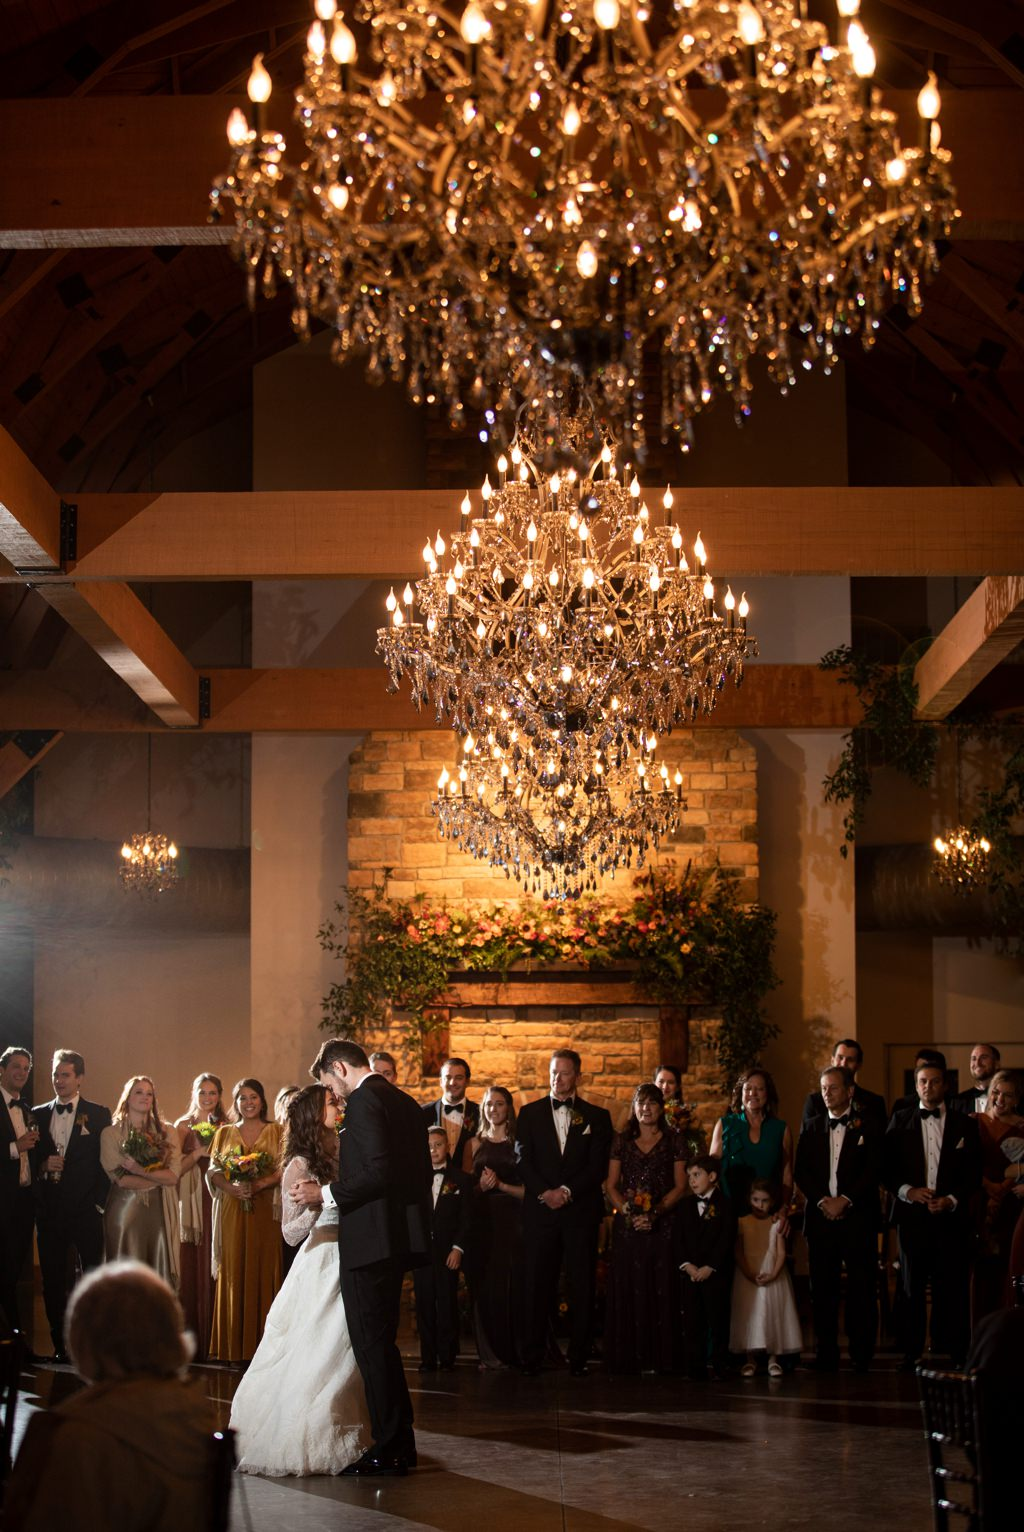 a bride and groom first dance at this wedding at historic acres of hershey pa